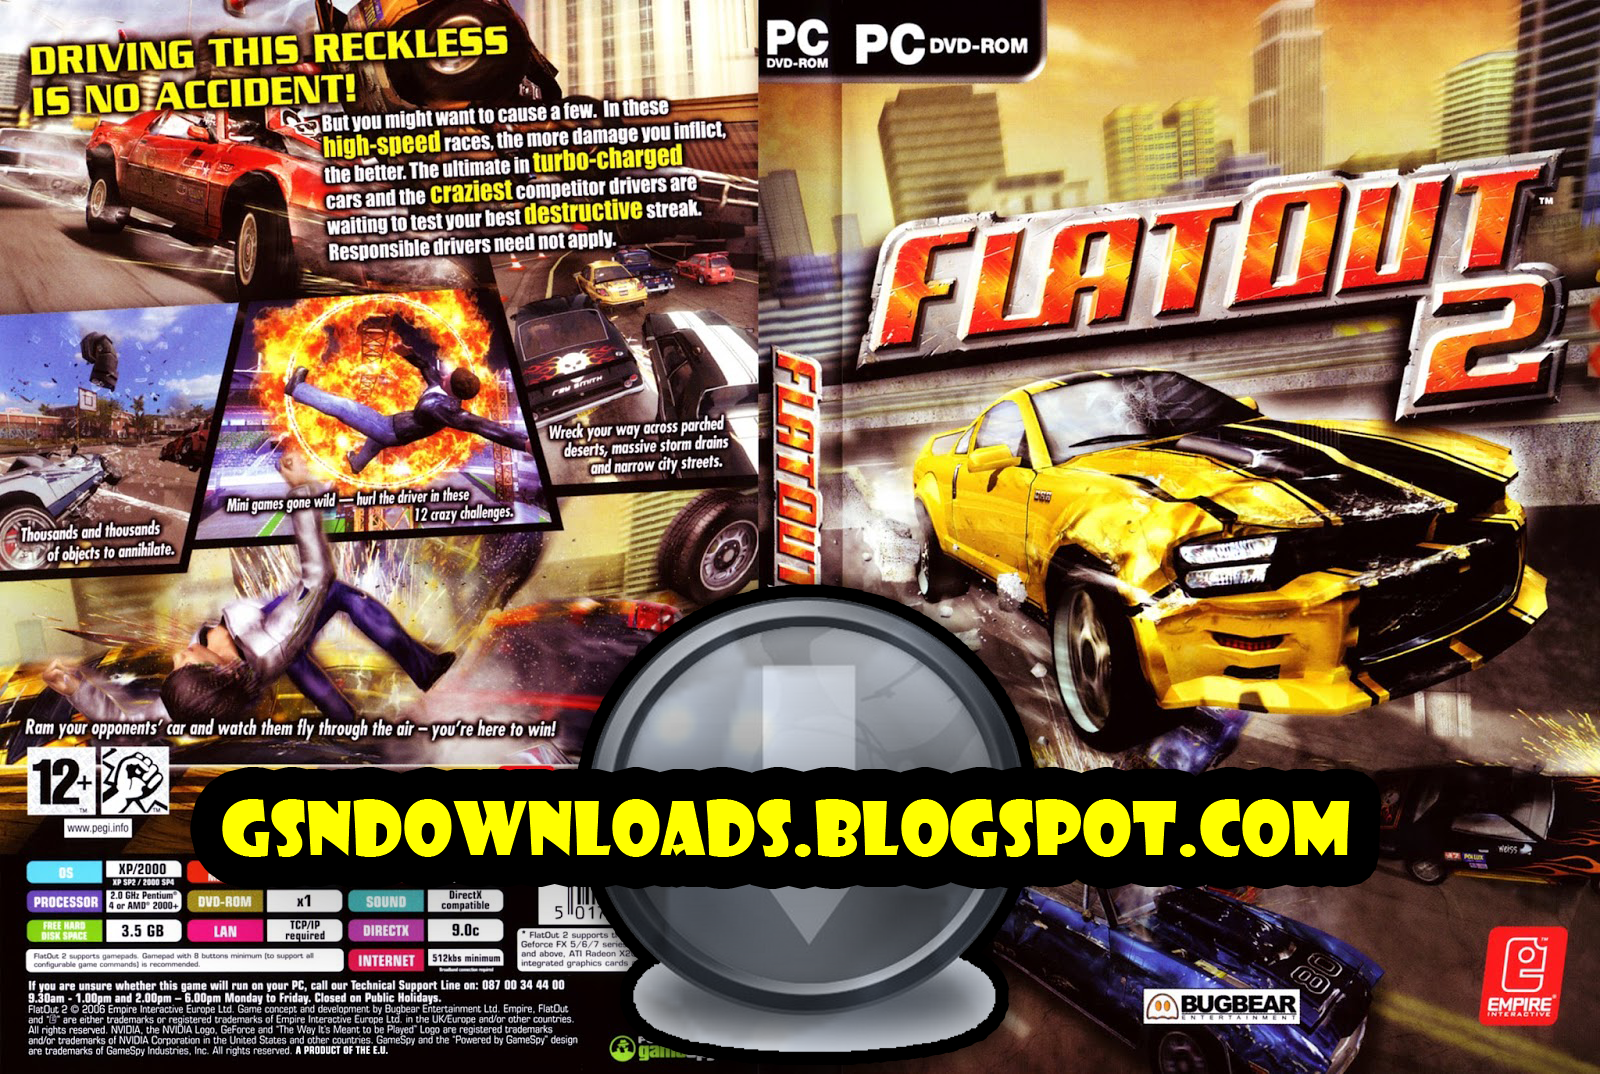 flatout 2 download free full version pc